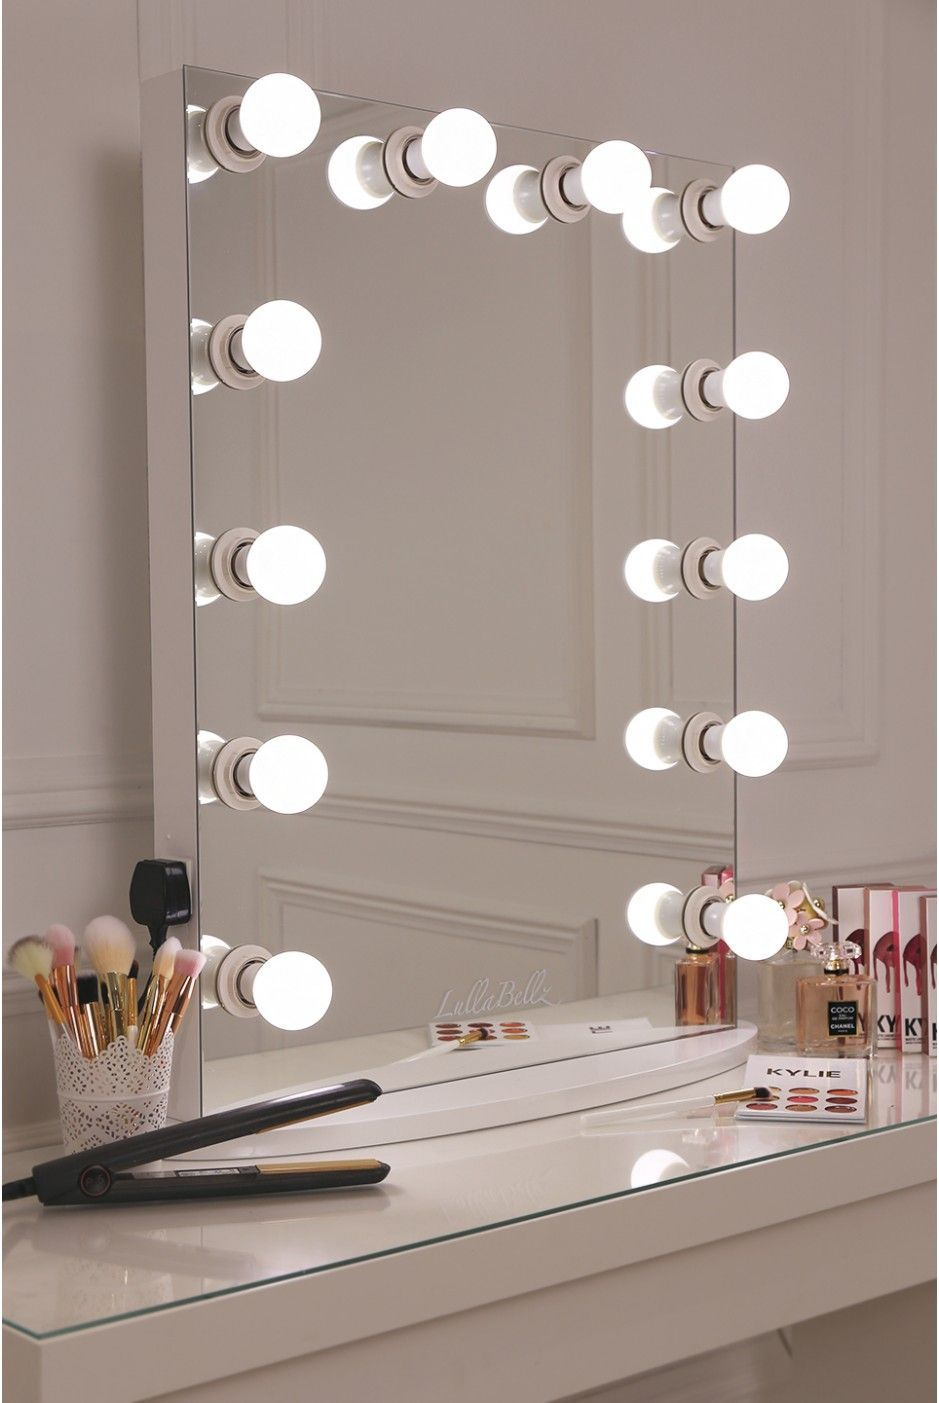 The Best Lighted Makeup Mirrors On Amazon According To Reviewers With Images Room Inspiration Diy Vanity Mirror Room Decor